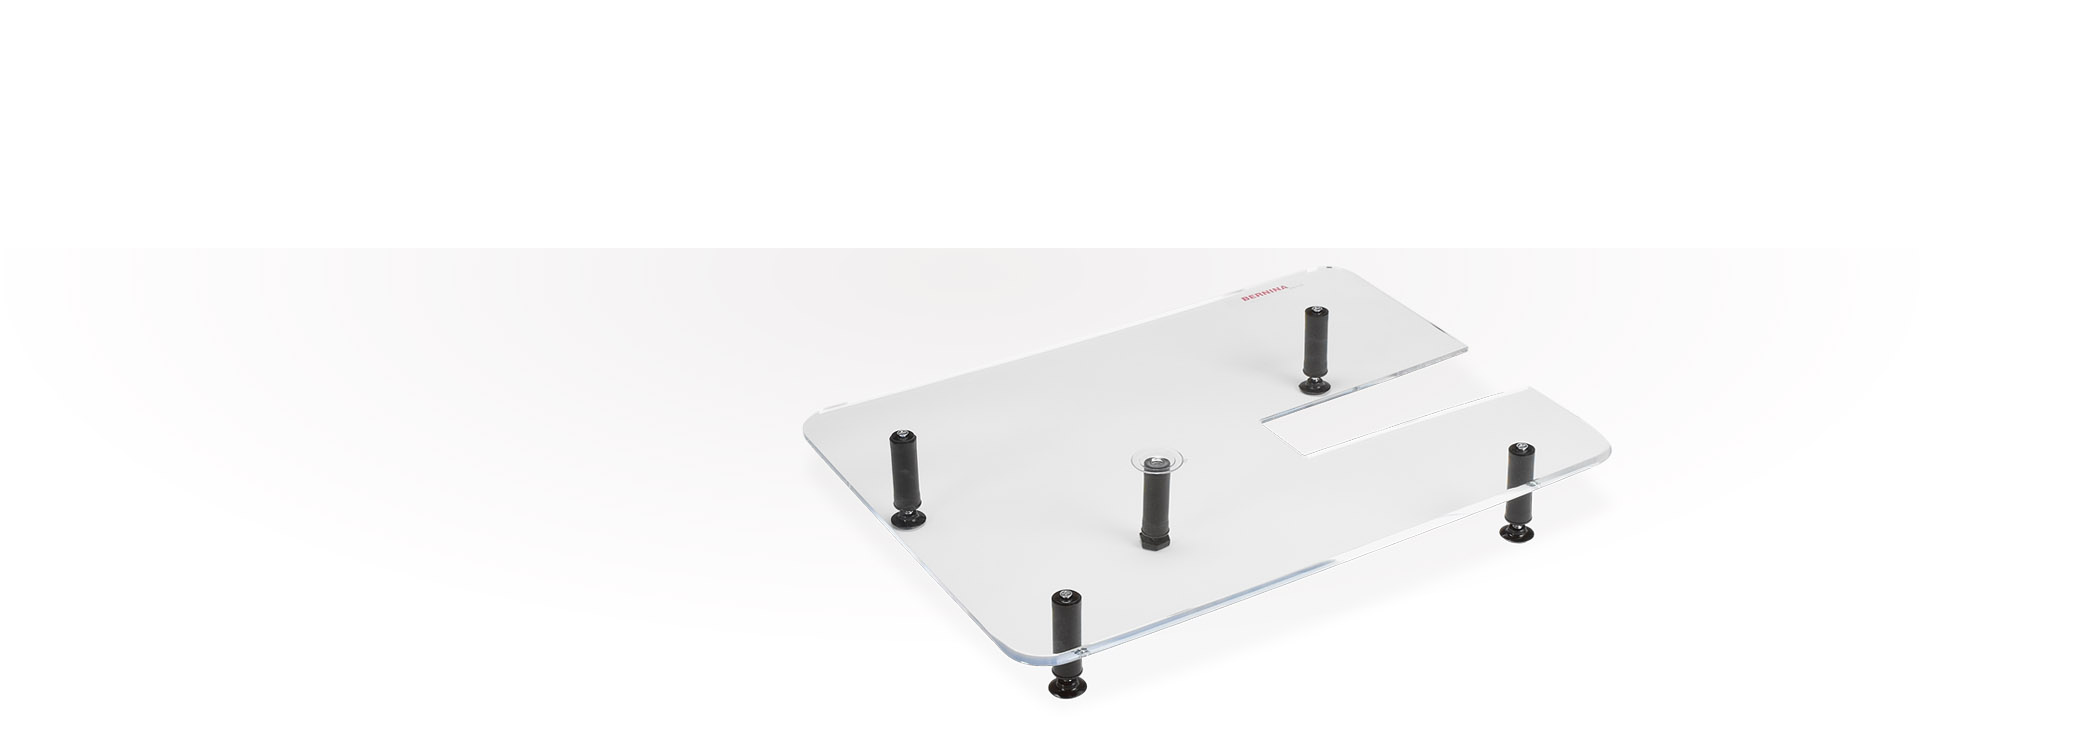 Picture: Plexiglass extension table for quilting